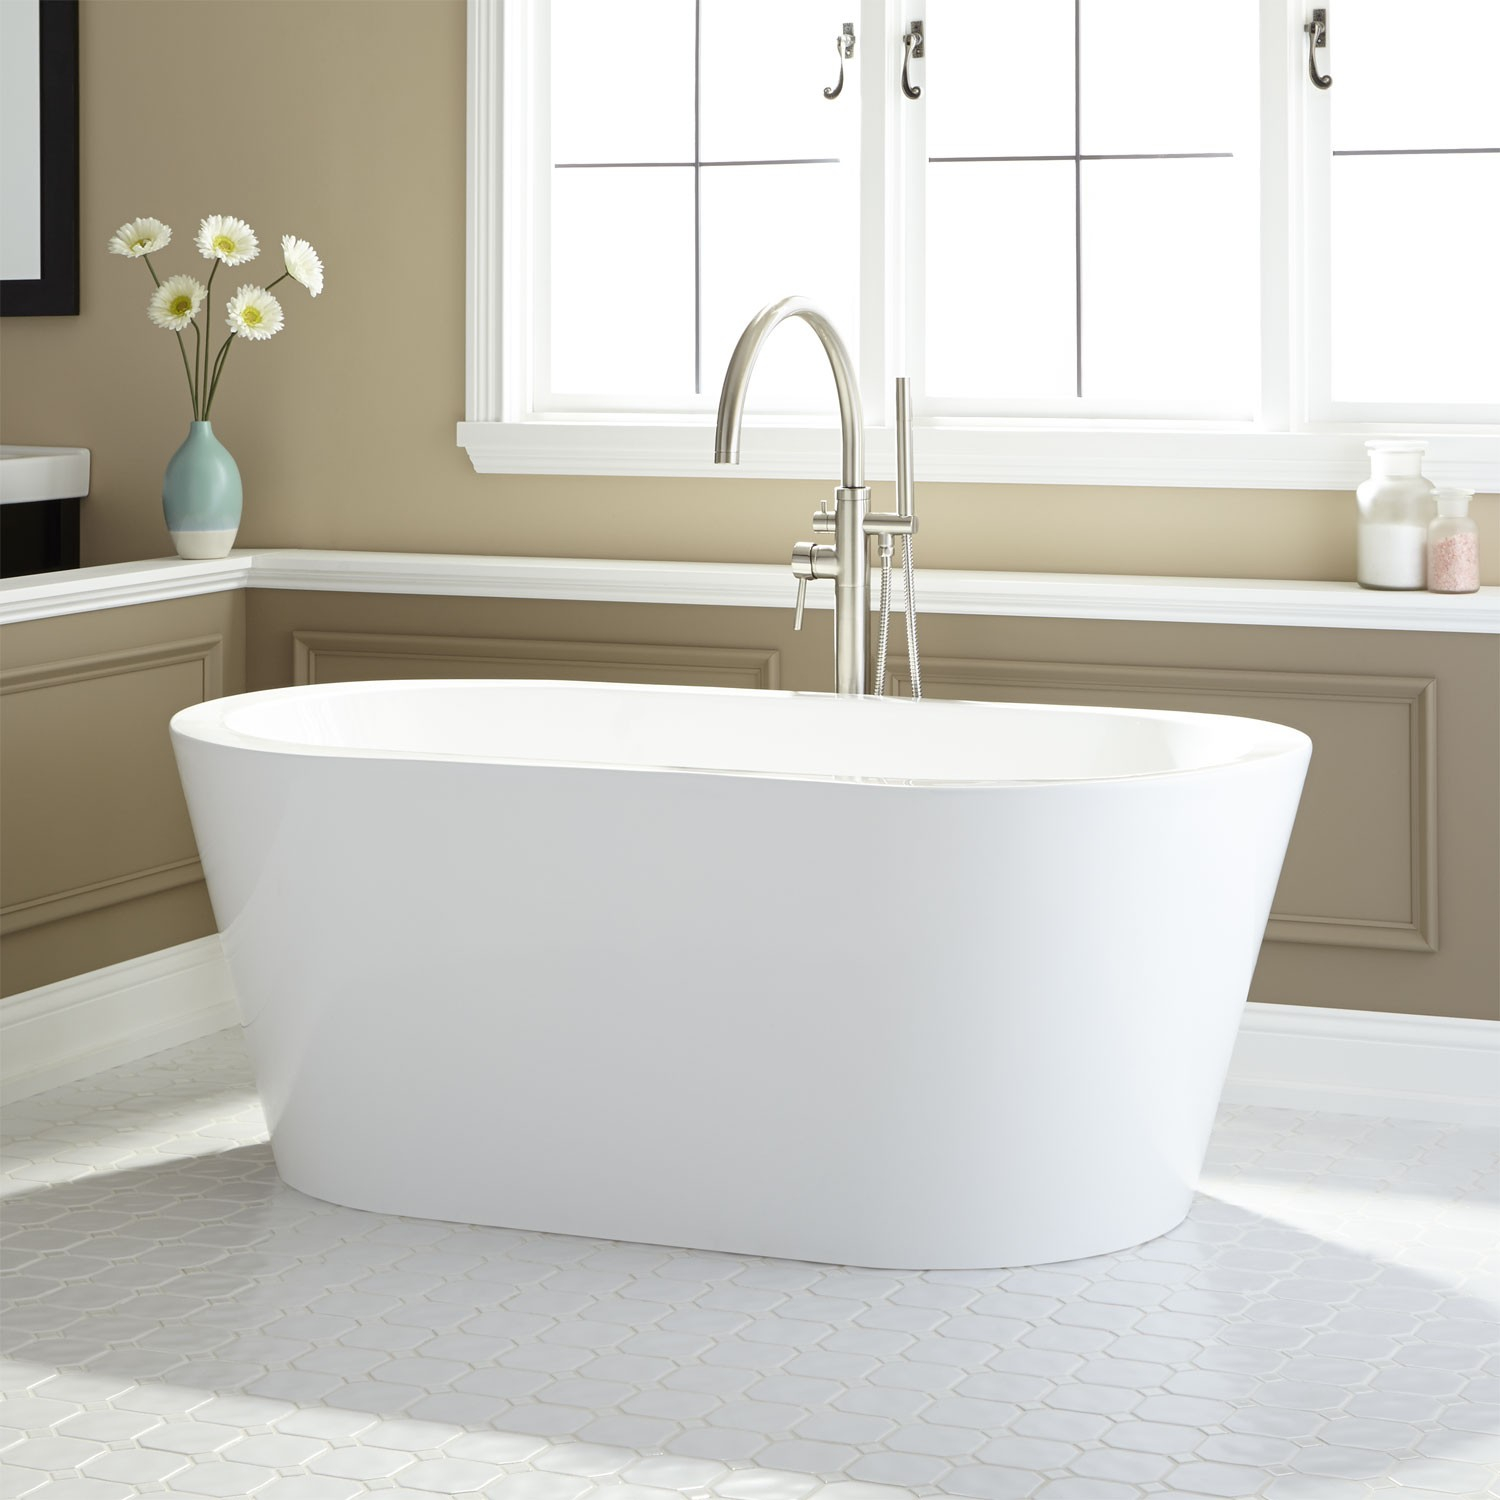 72 Inch Freestanding Soaker Tub Bathtub Understanding inside sizing 1500 X 1500